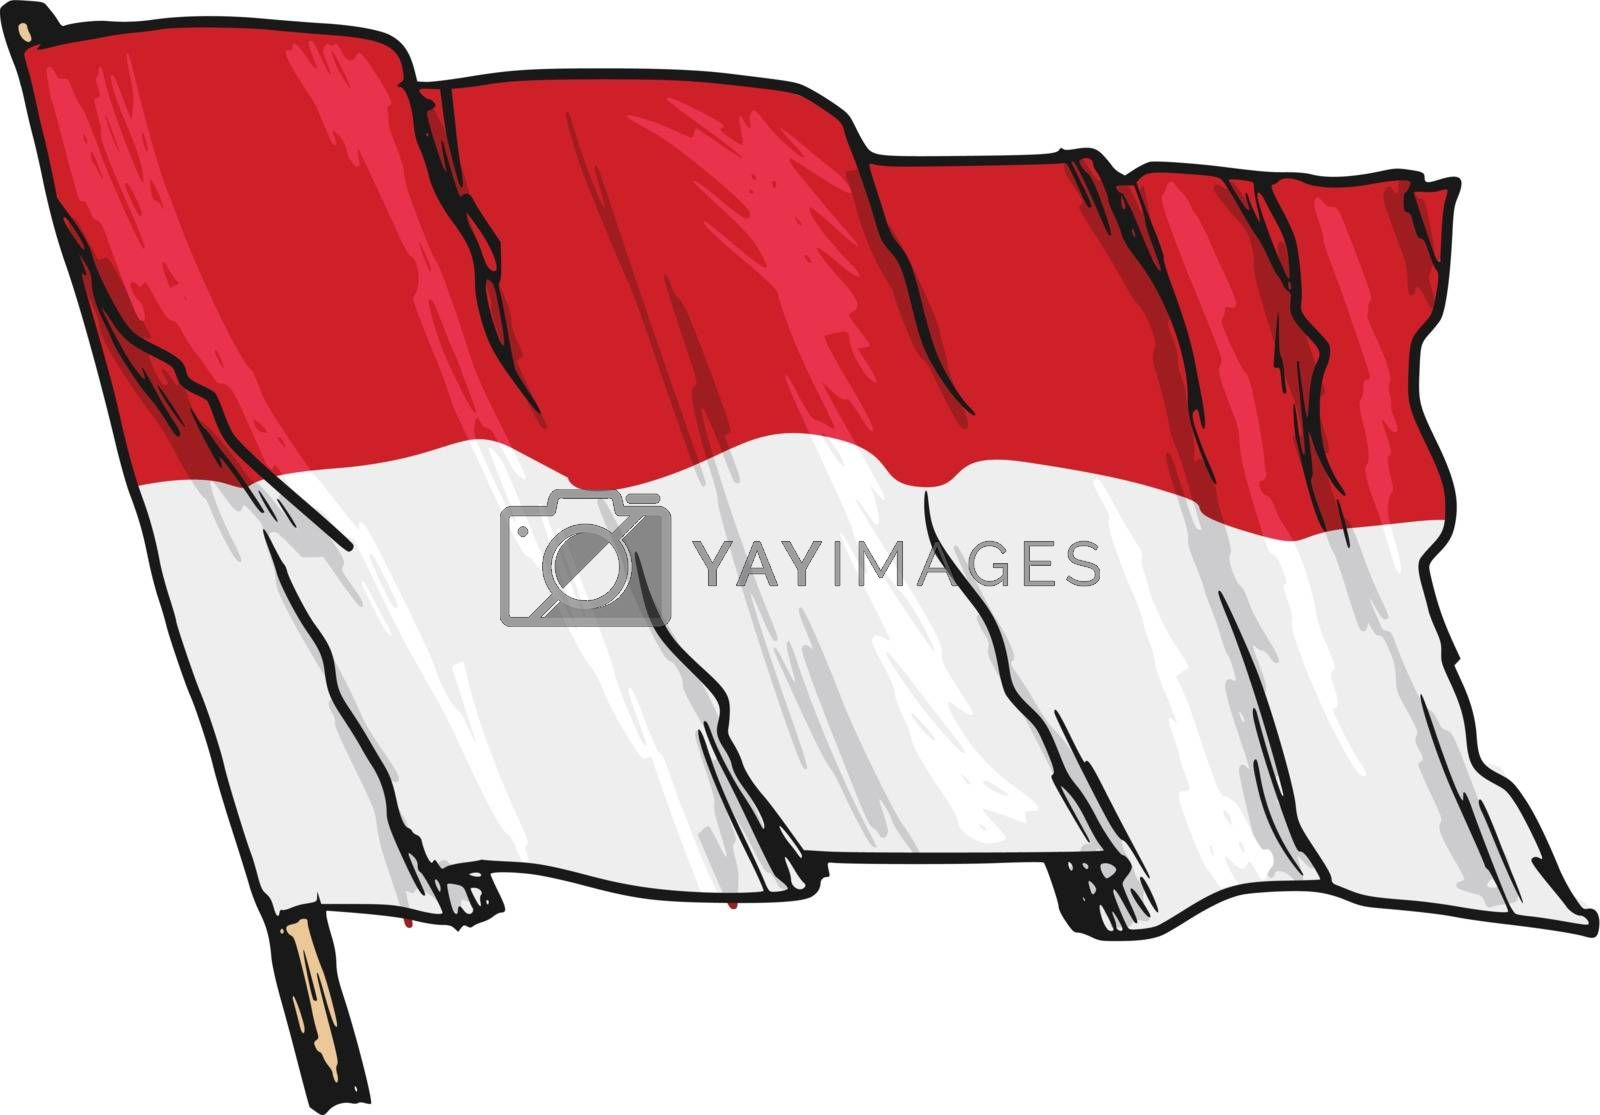 flag of Indonesia by Perysty